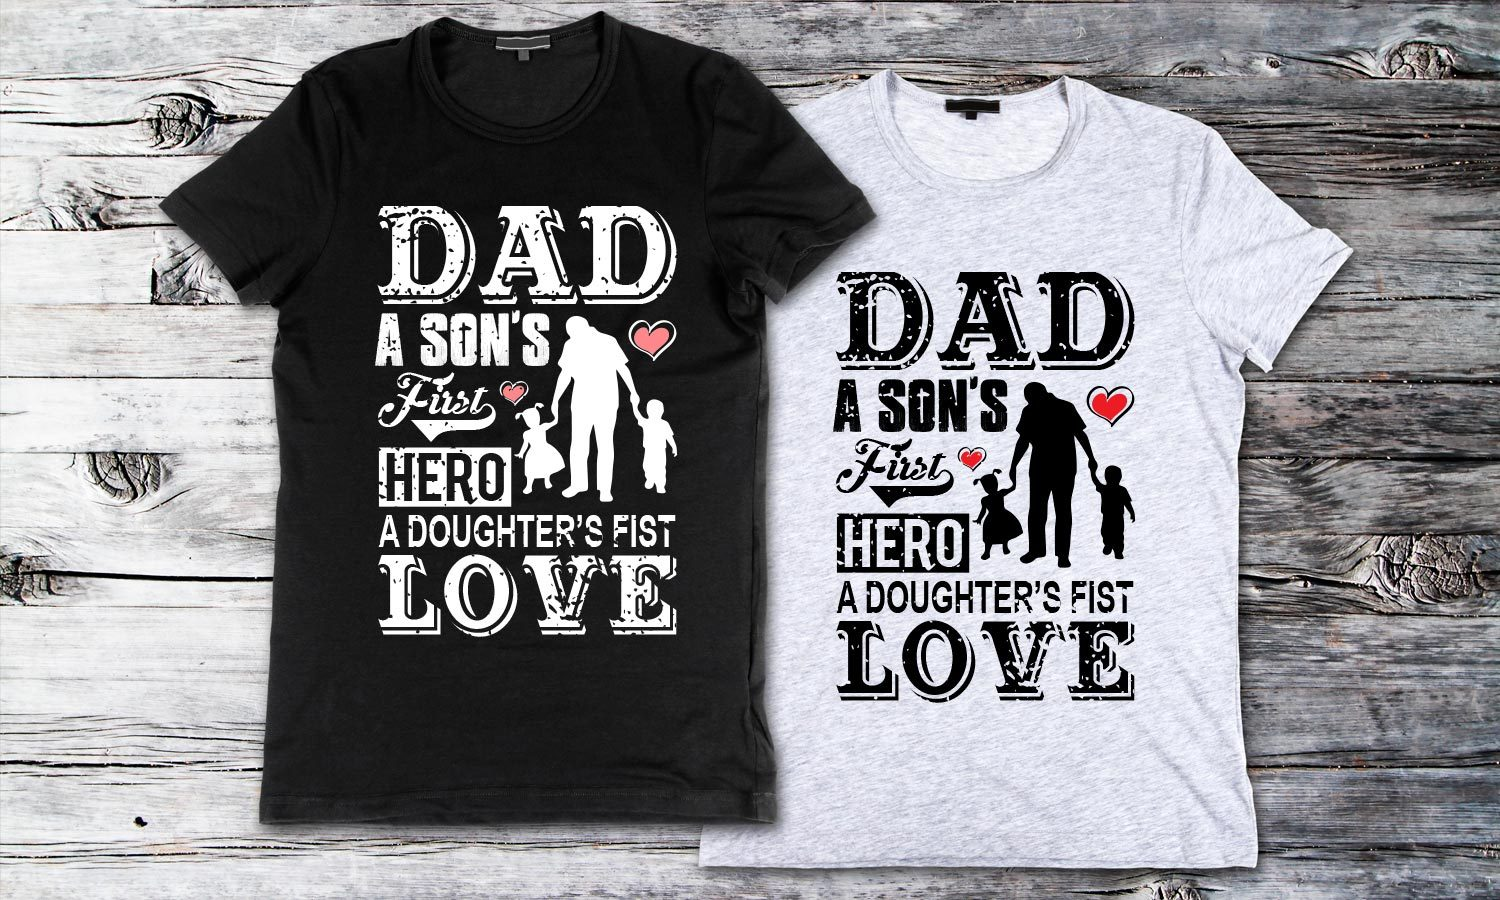 Dad Love - Printed T-Shirt for Men, Women and Kids - TS182